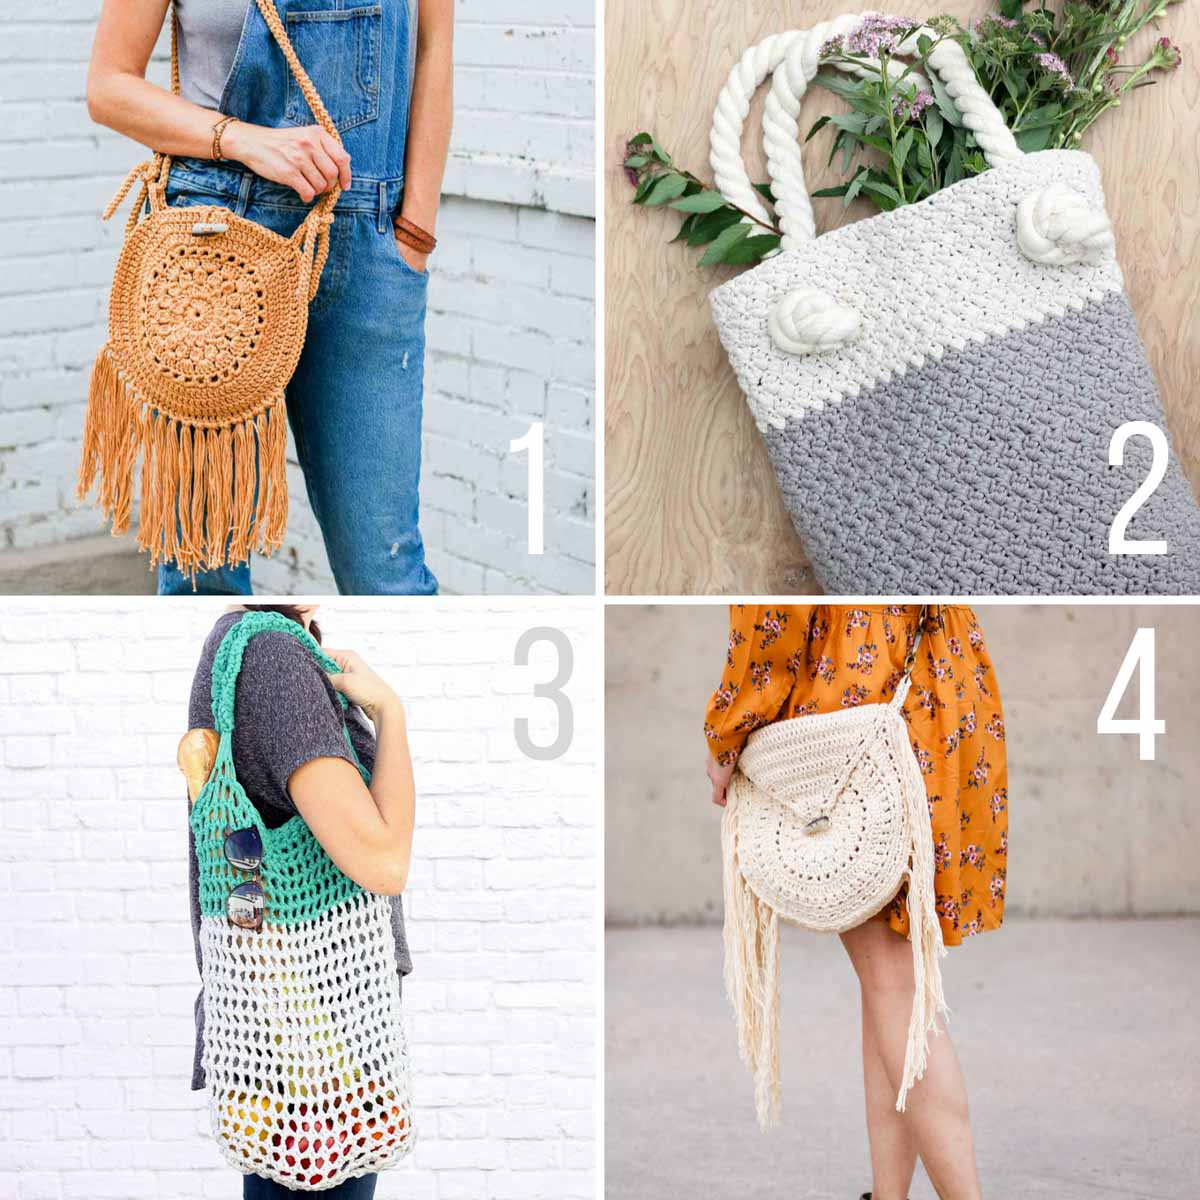 Free crochet patterns for purses and bags.